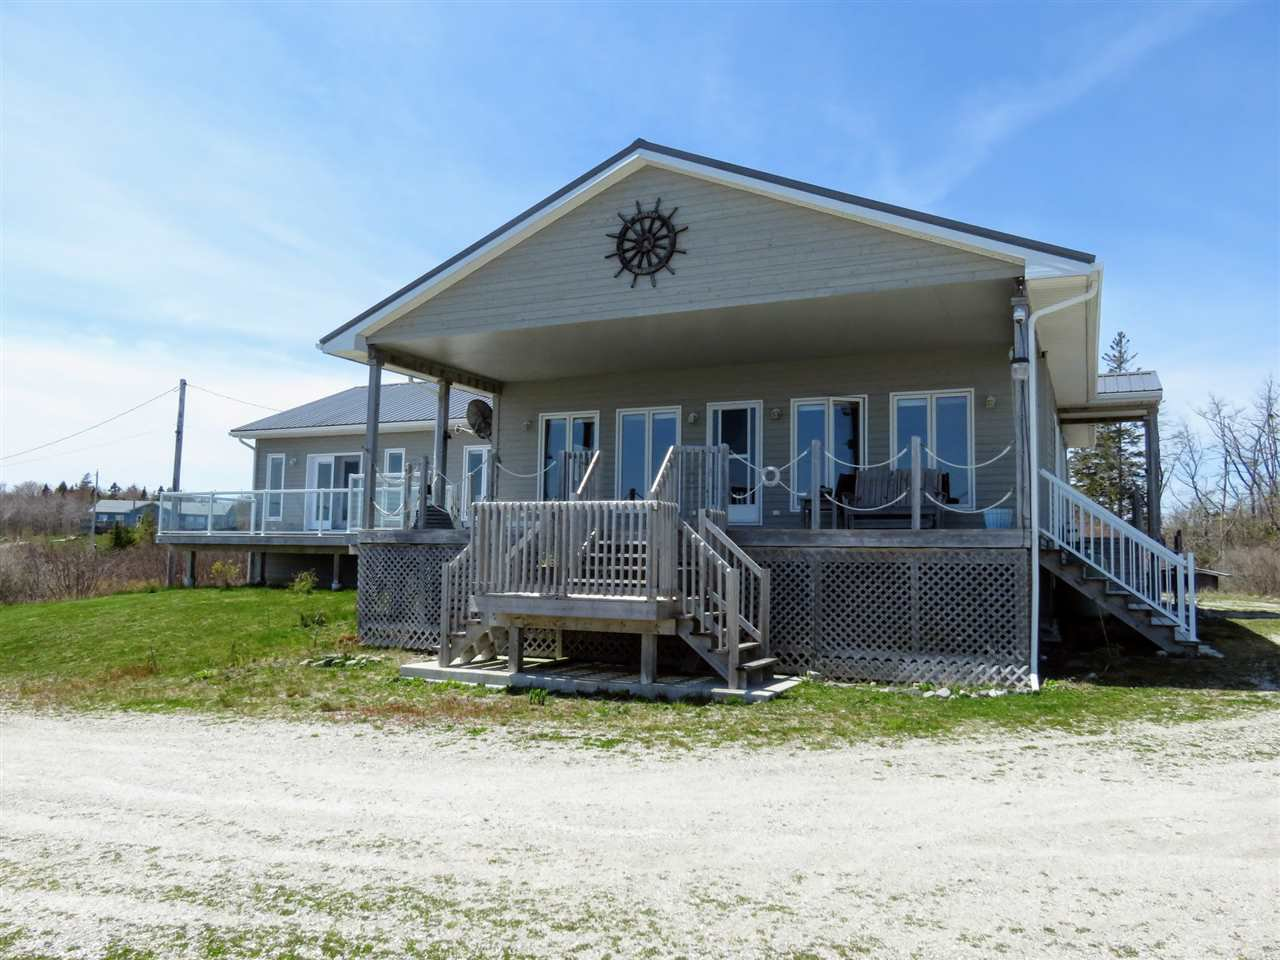 Main Photo: 4144 SANDY POINT Road in Jordan Bay: 407-Shelburne County Residential for sale (South Shore)  : MLS®# 202008366